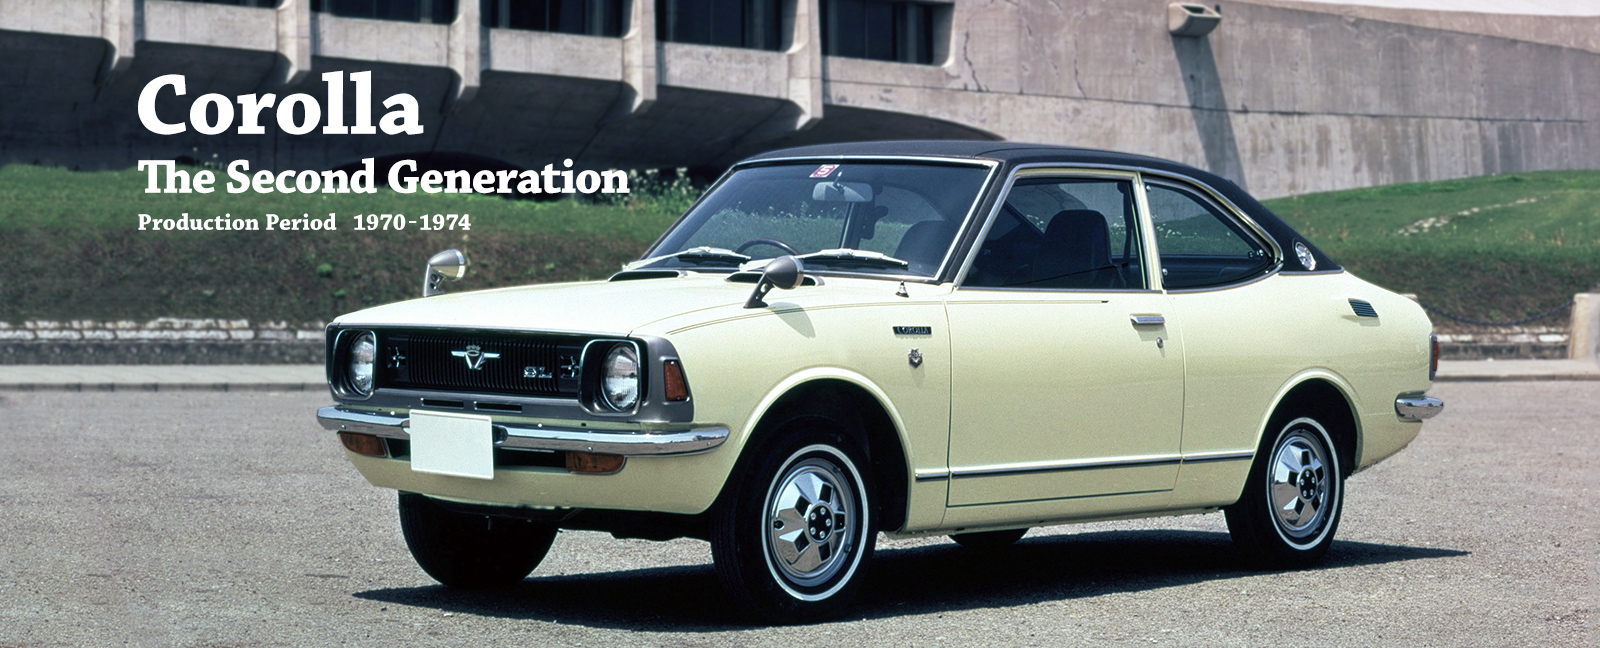 Vehicle Heritage, Corolla, The Second Generation